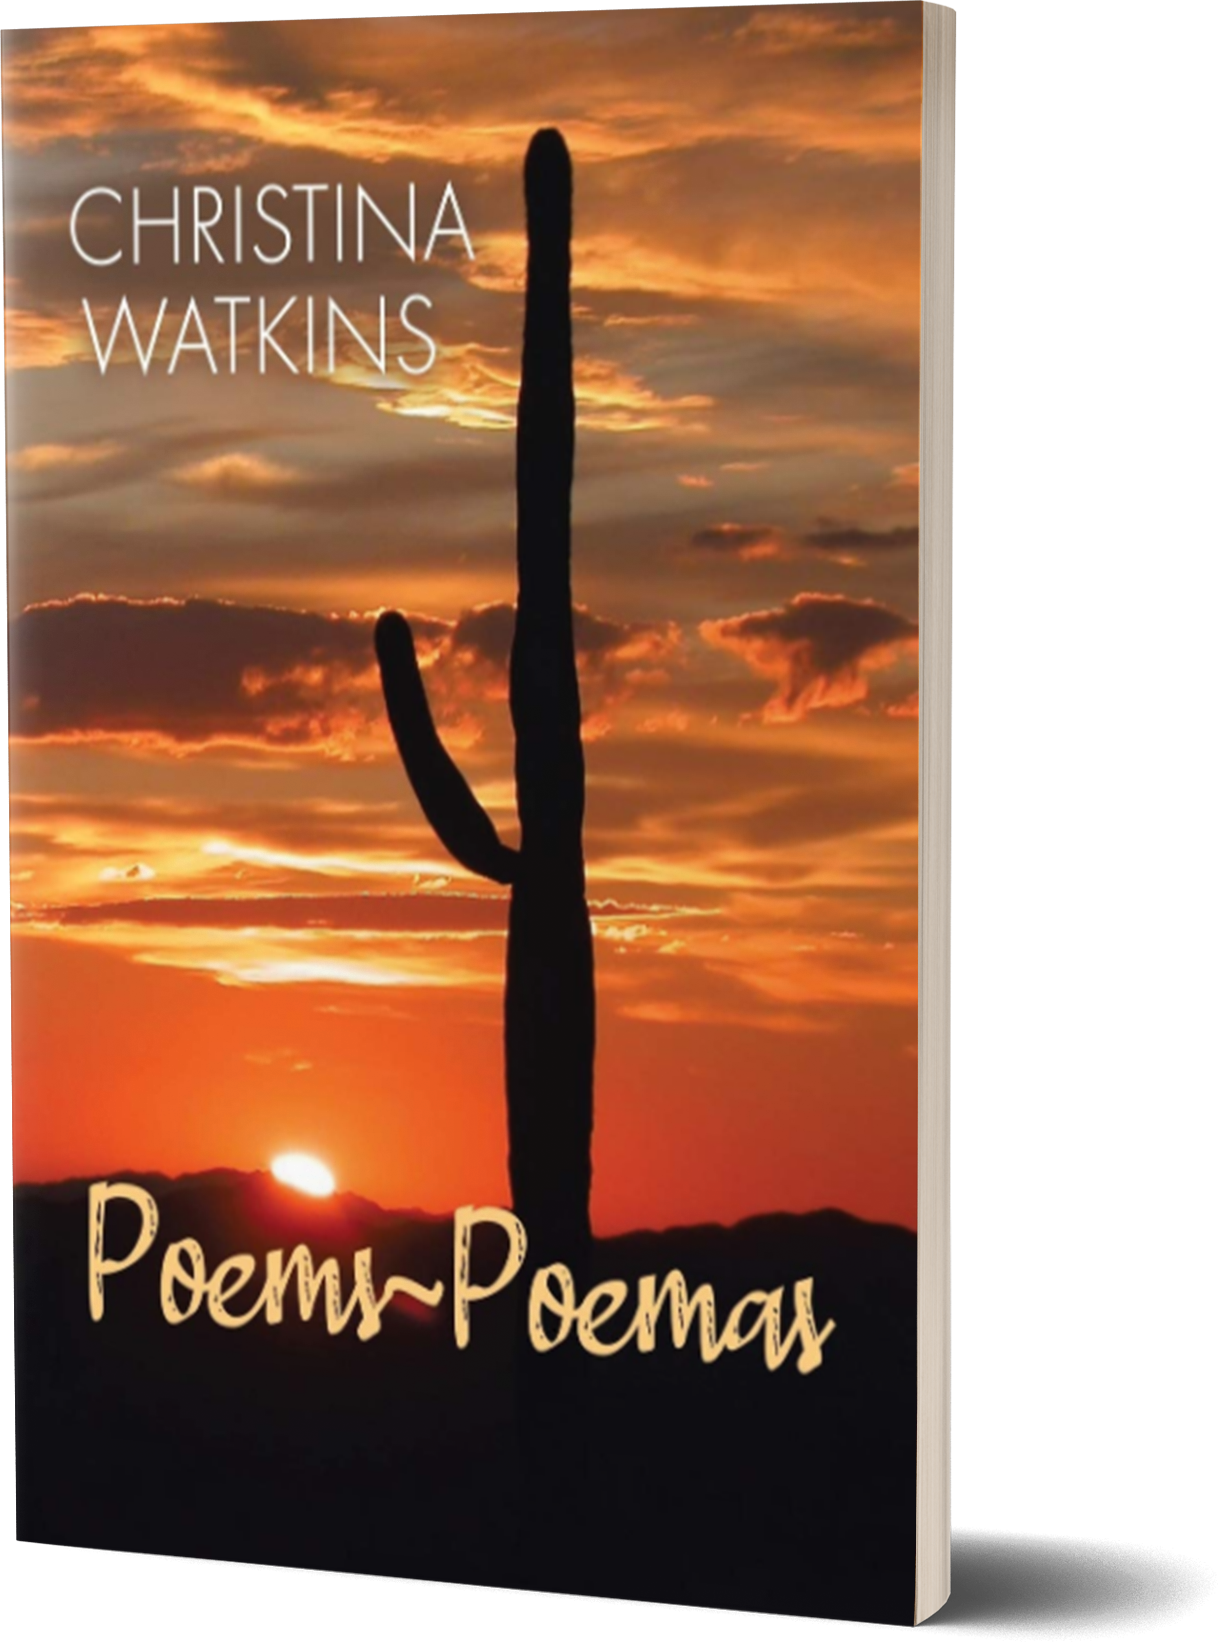 Poems - Poemas - Christina Watkins